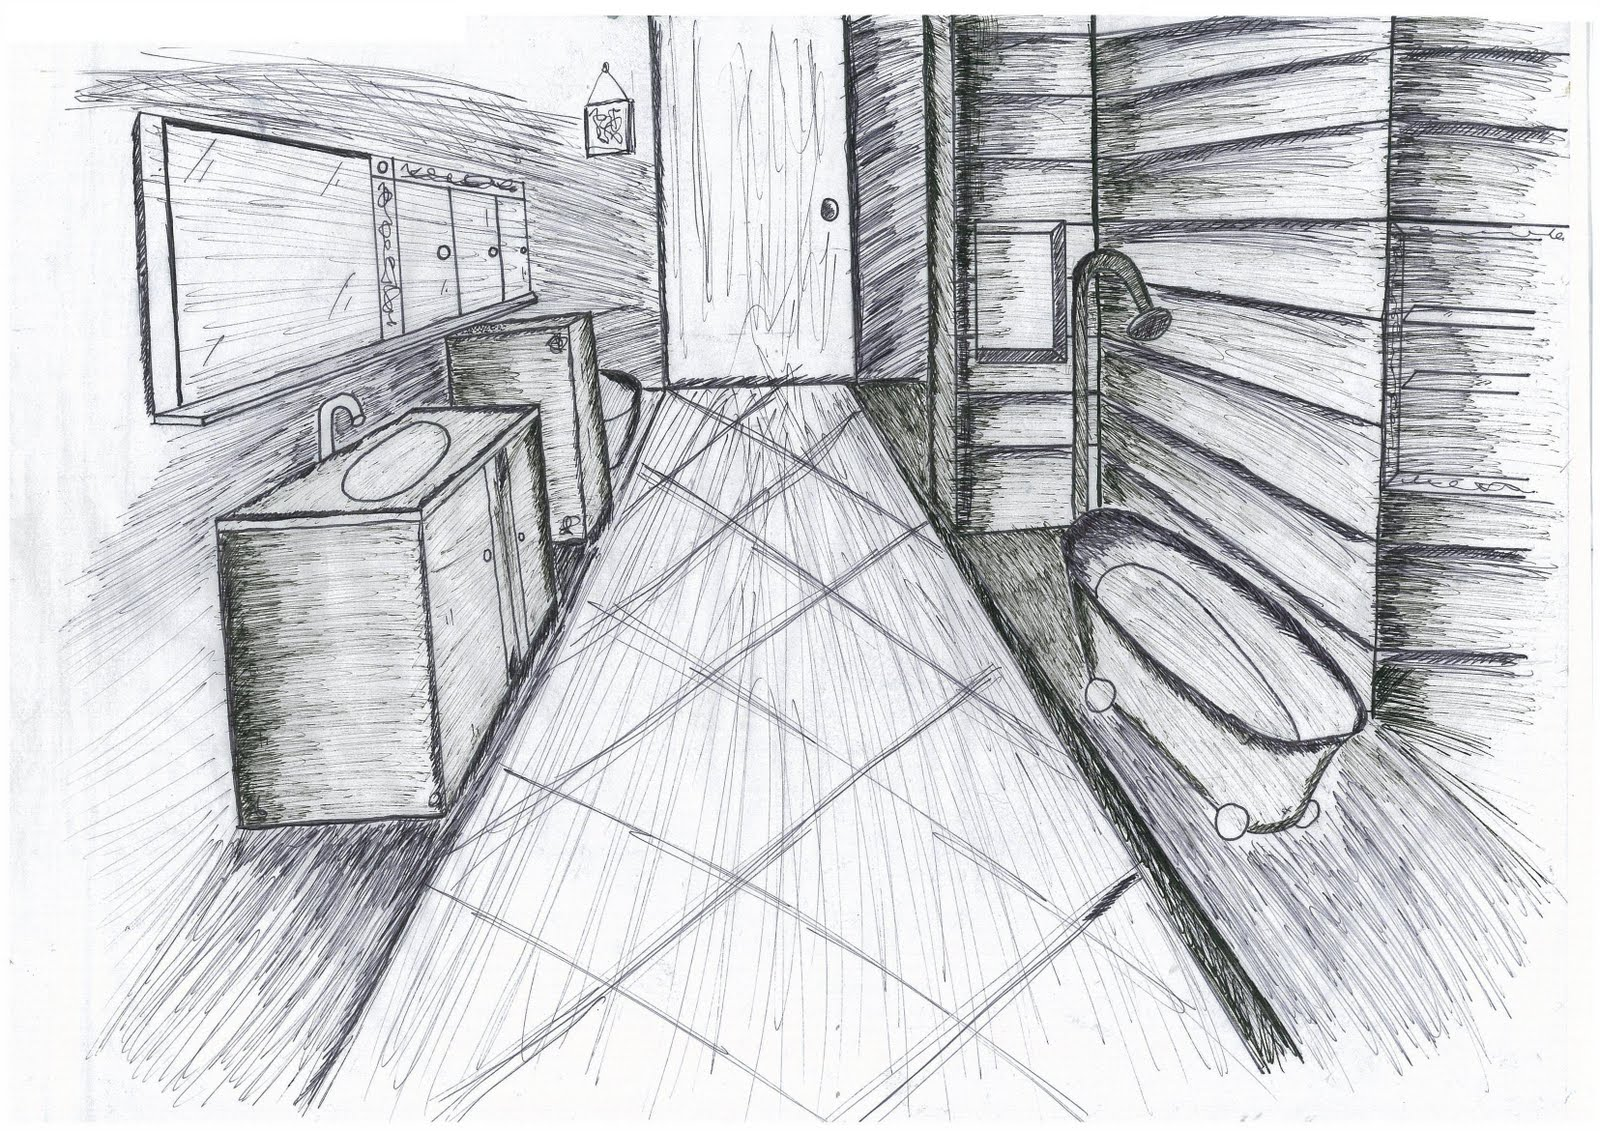 Bathroom perspective drawing - Bathroom Perspective Drawing 1 Point Perspective Internal